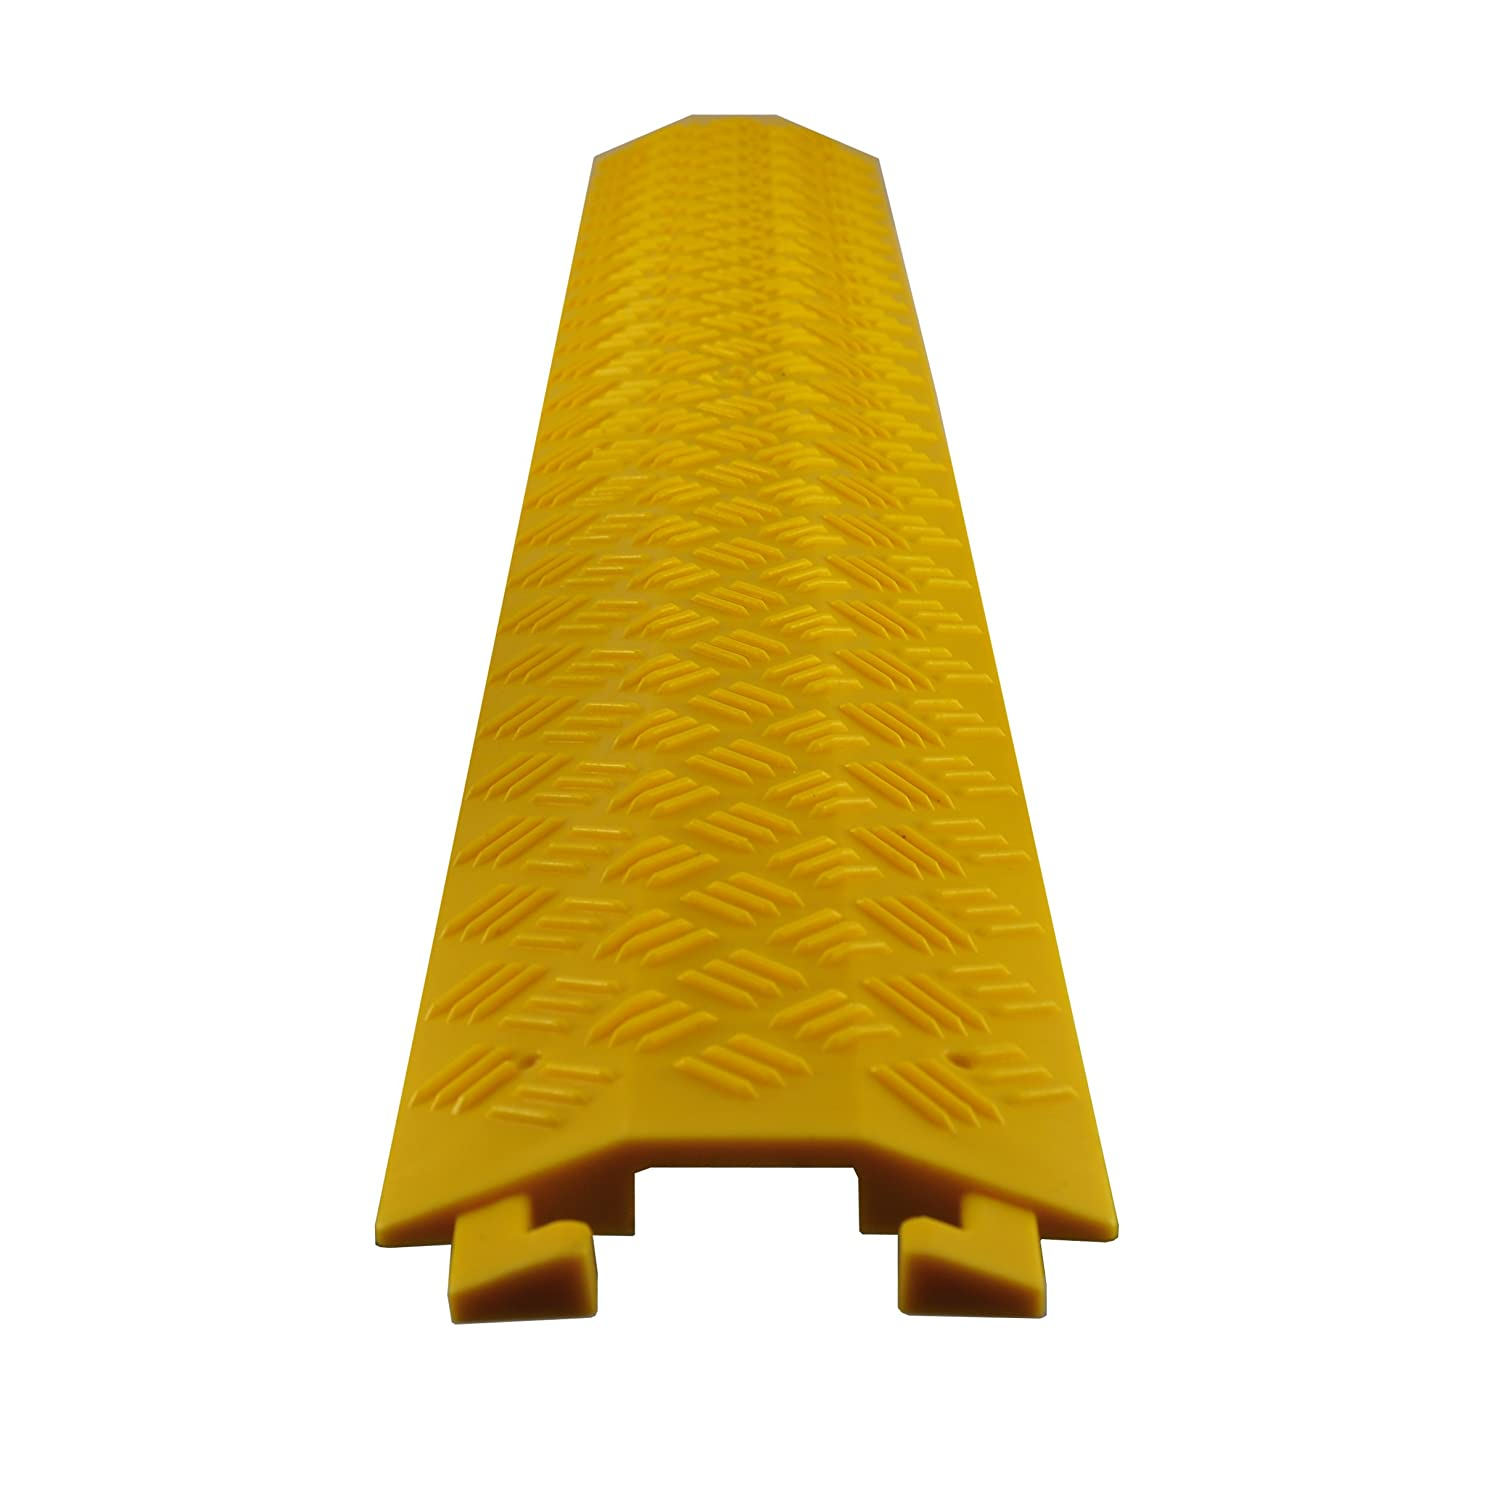 Durable Cable Ramp Protective Cover 2,000 lbs Max Heavy Duty Drop Over Hose /& Cable Track Protector Pyle PCBLCO22 Sound Around Safe in High Walking Traffic Areas Cable Concealer for Outdoor /& Indoor Use